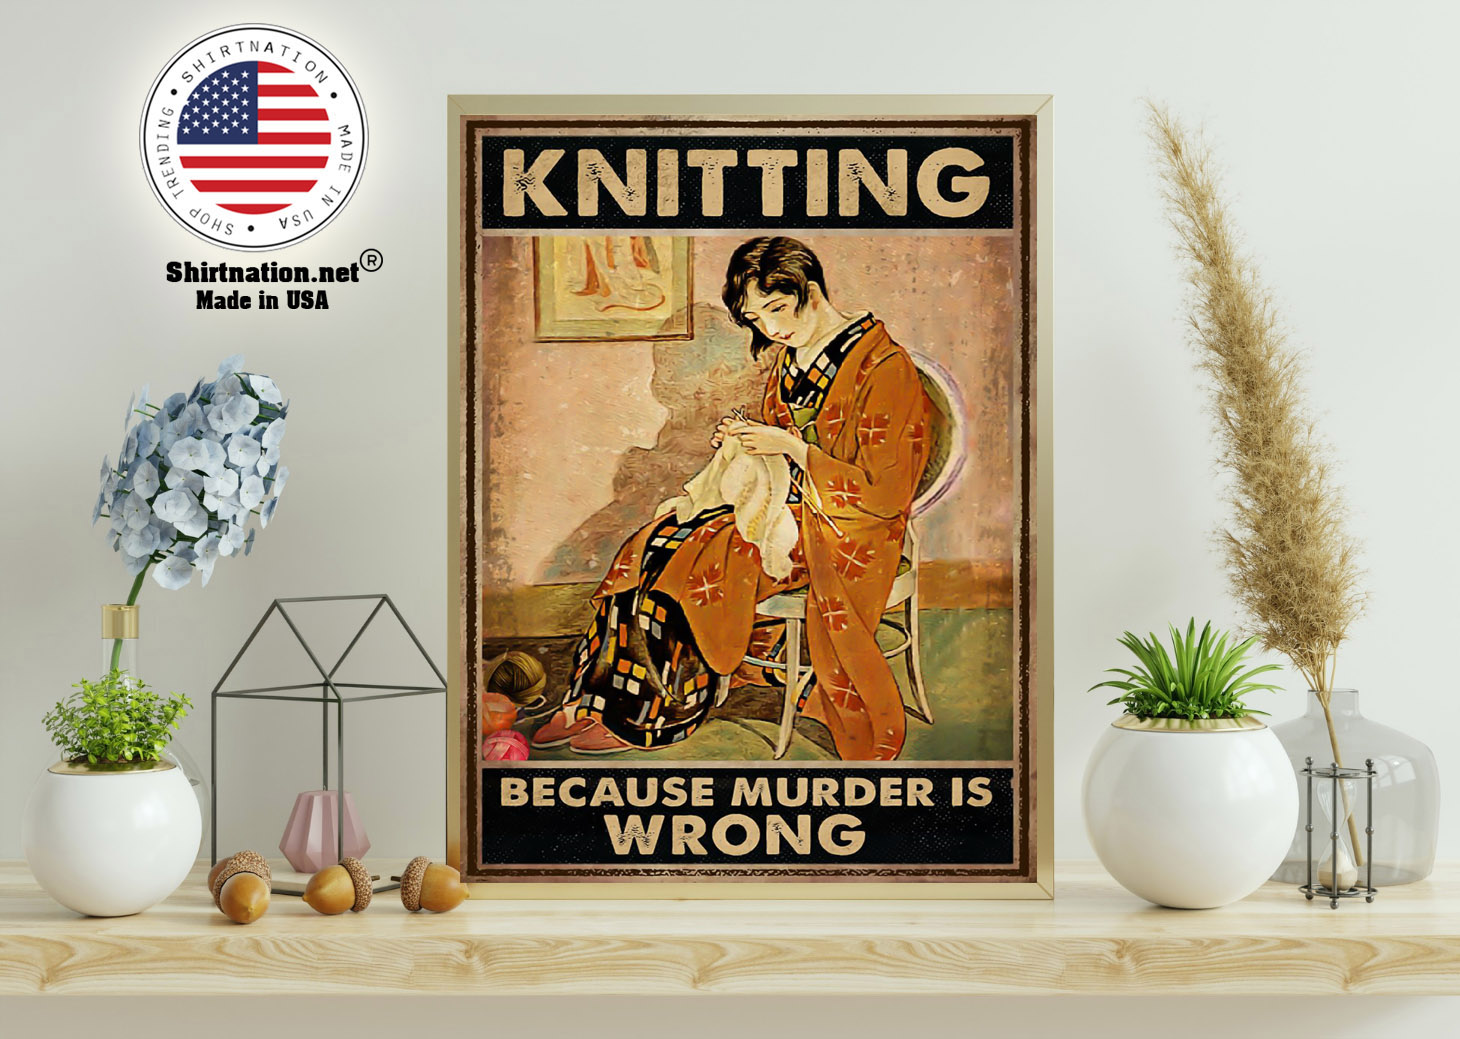 Knitting because murder is wrong poster 11